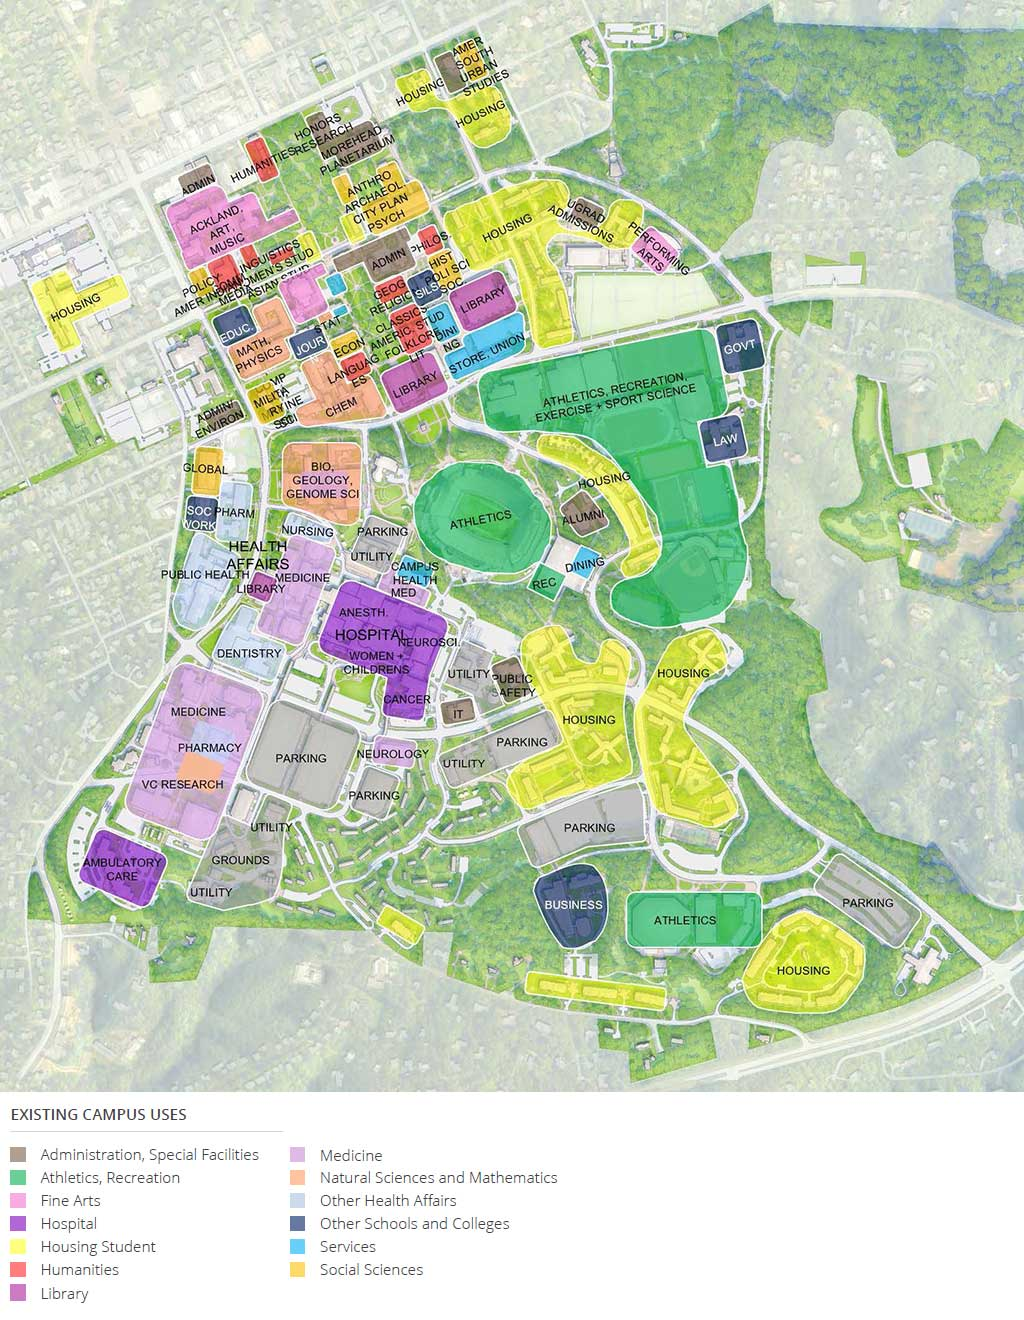 Existing Campus Uses